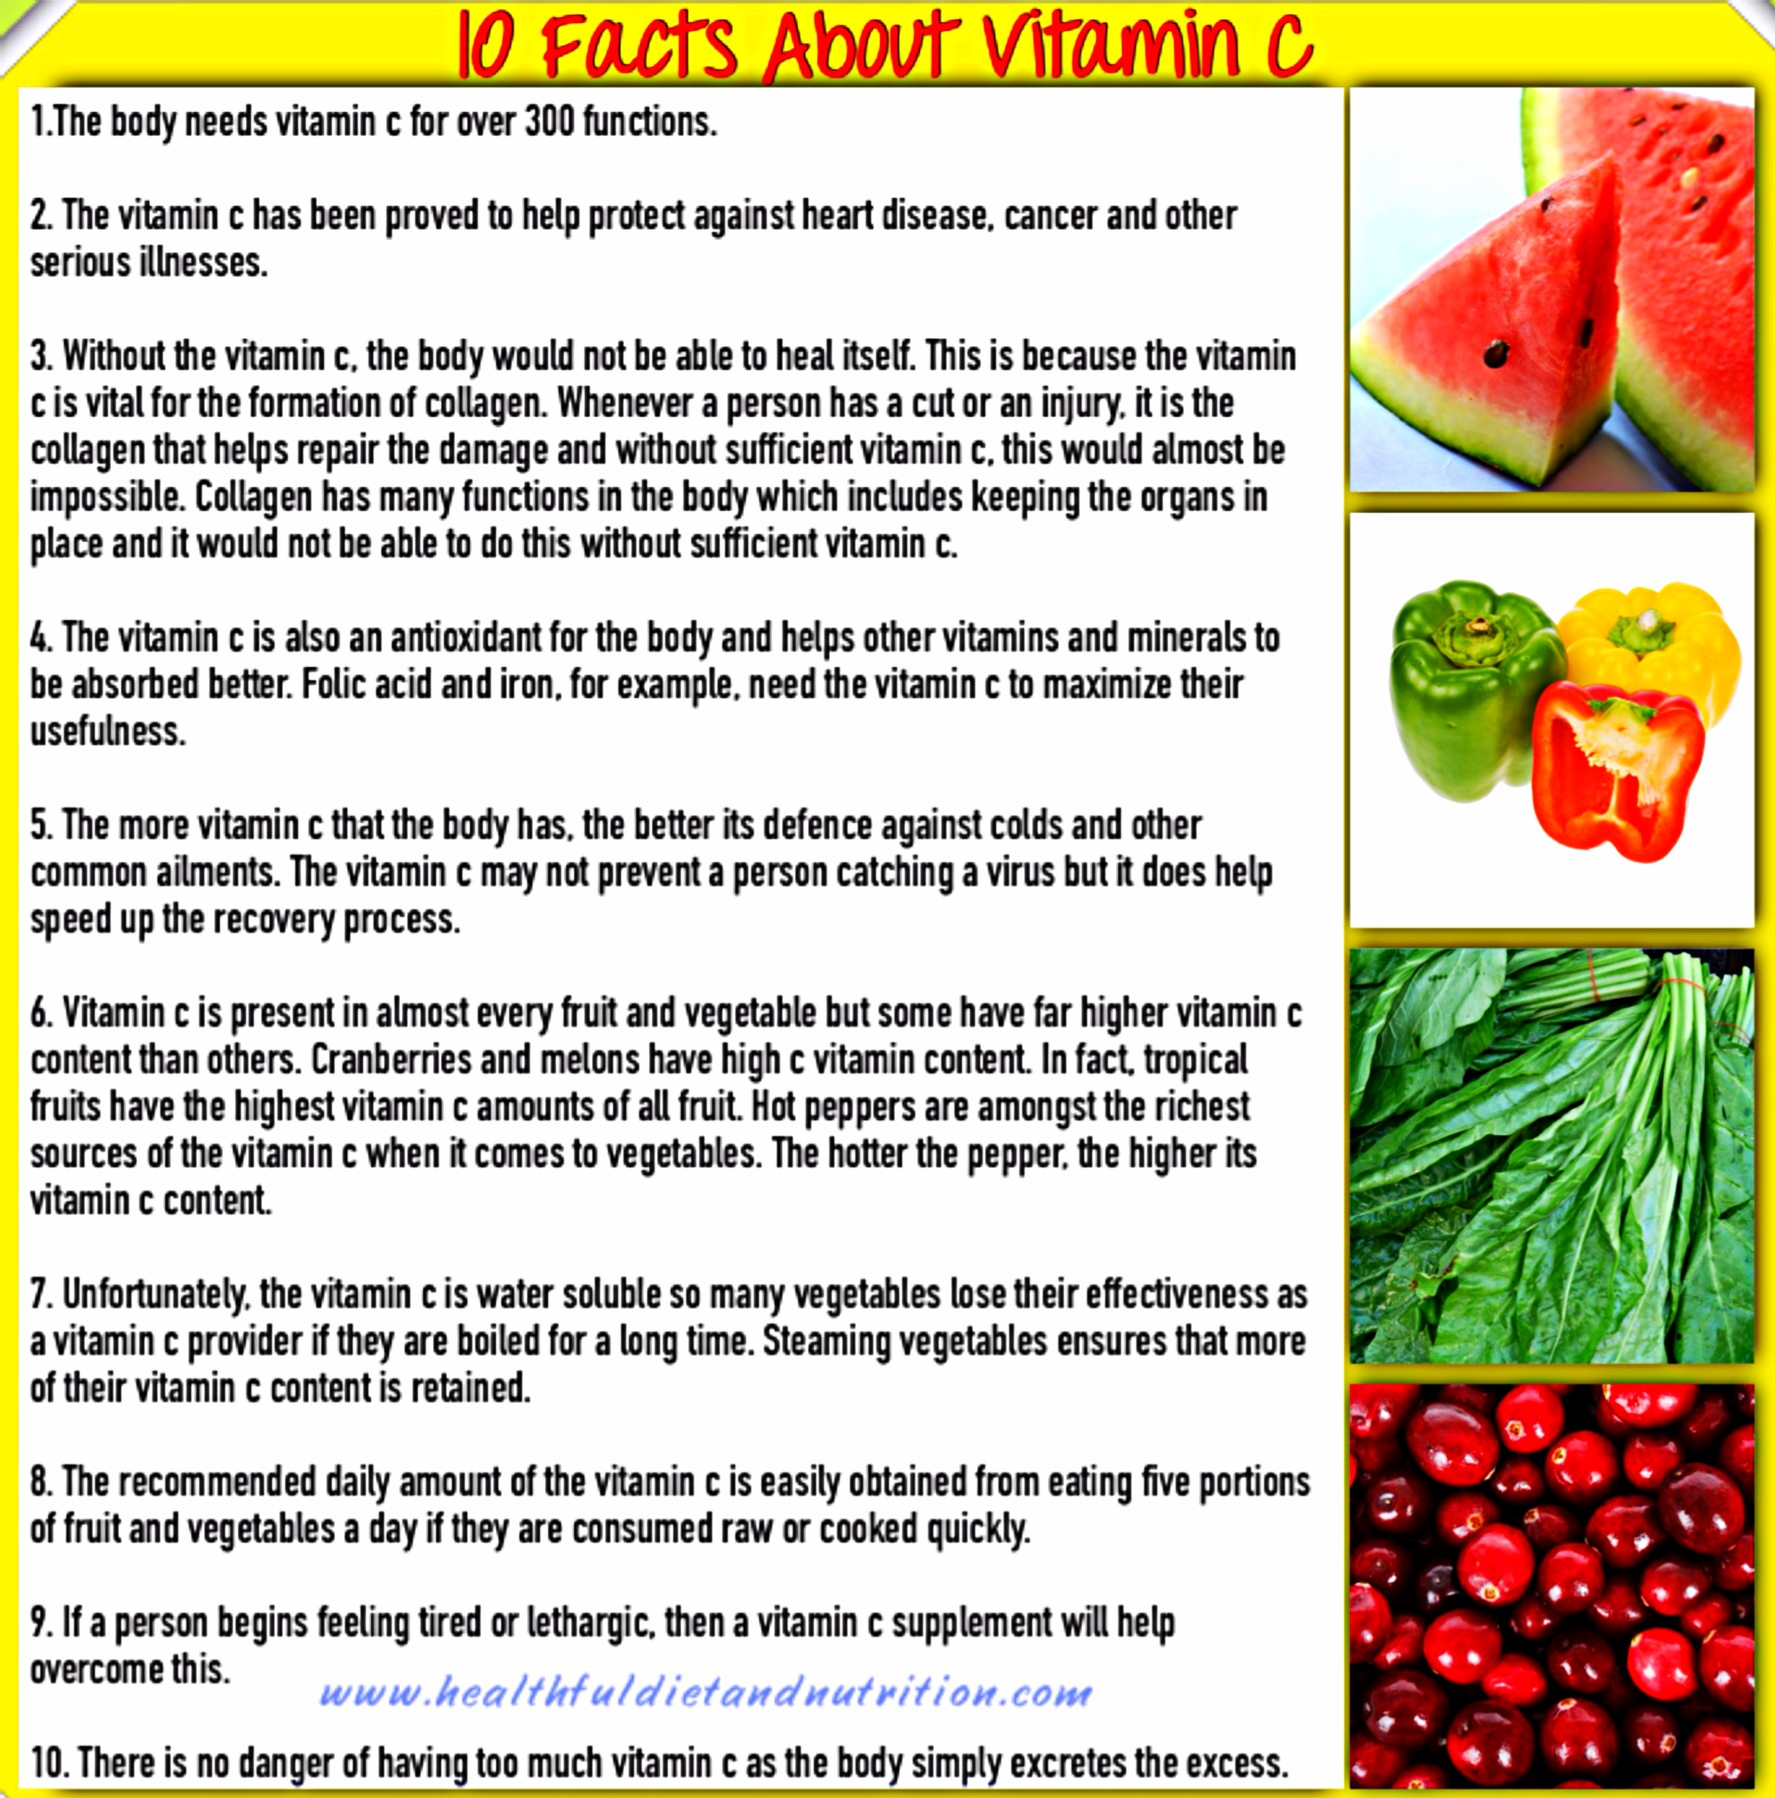 10 Facts About Vitamin C